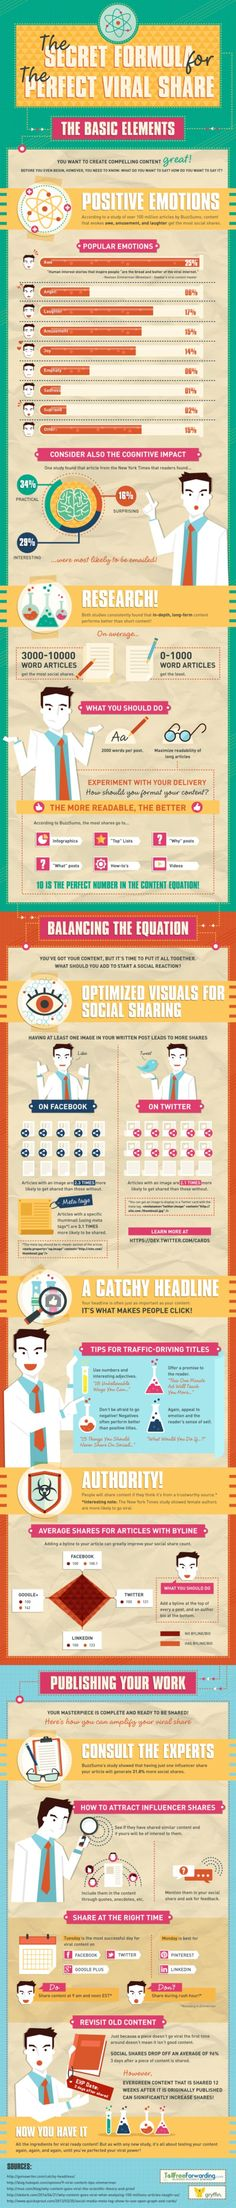 How Do You Create And Share Compelling Content For Viral Potential? #Infographic